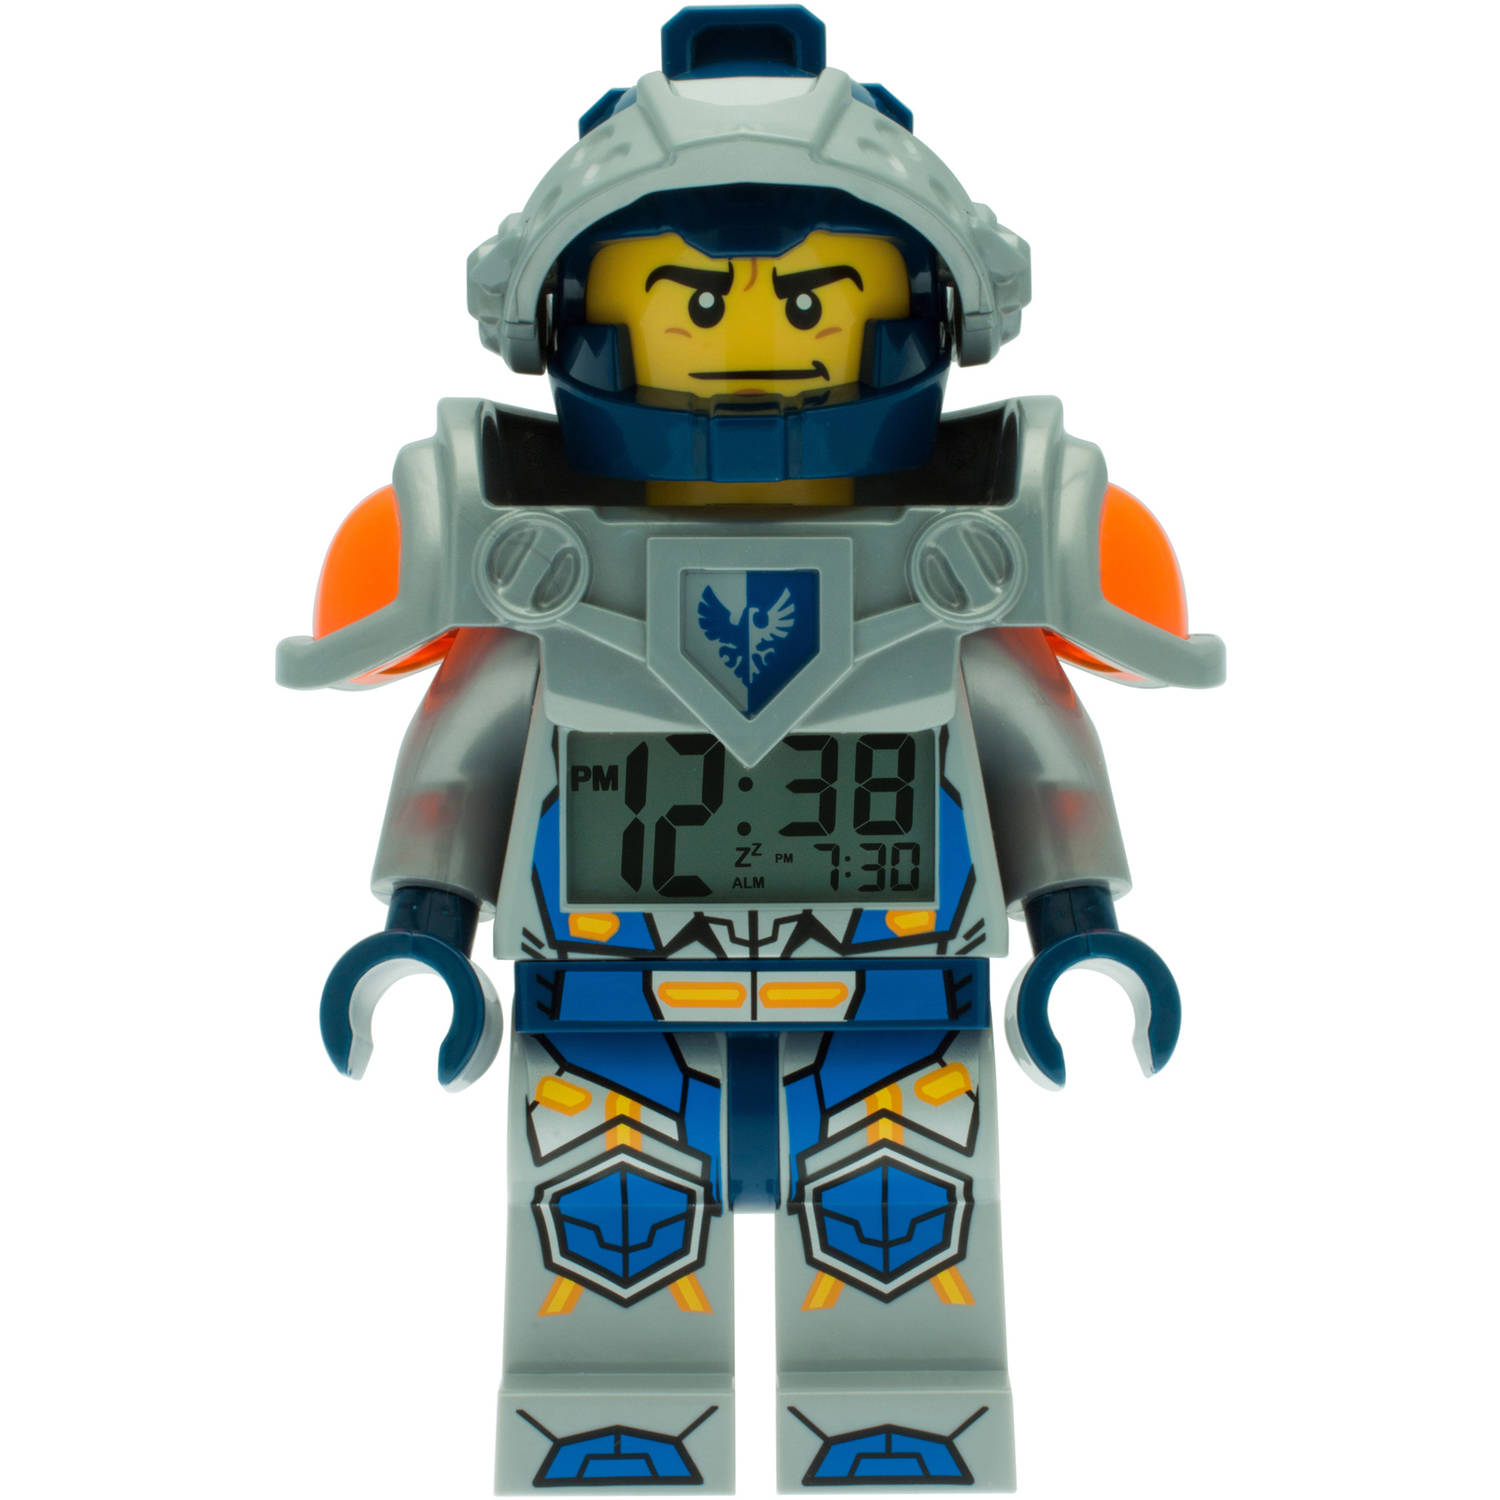 LEGO Clay Light-Up Minifigure Nexo Knights Alarm Clock